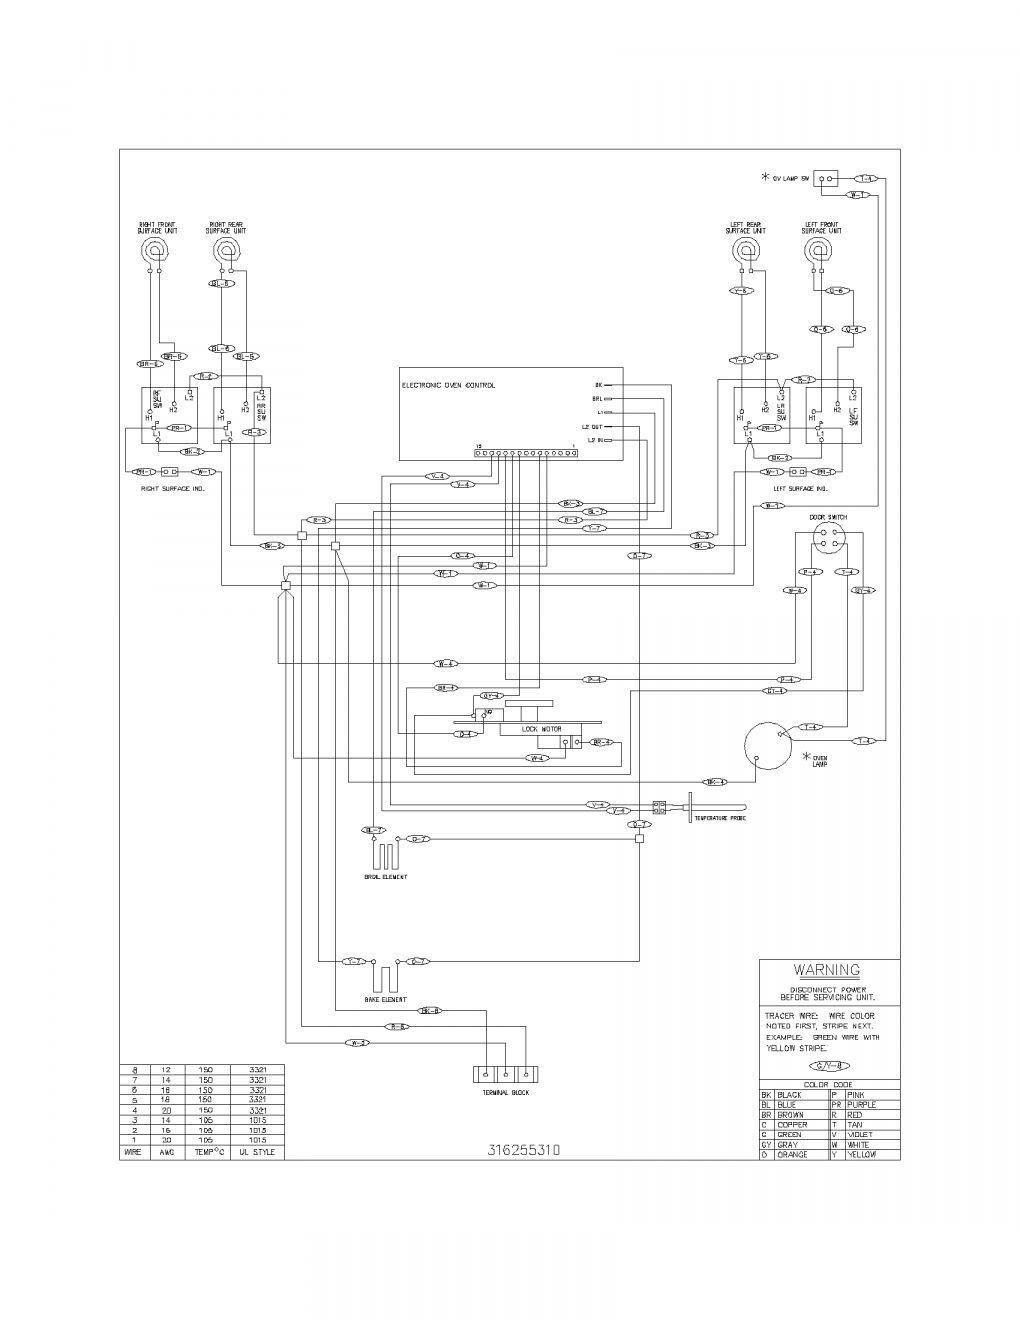 17 Frigidaire Electric Range Wiring Diagram Wiring Diagram In